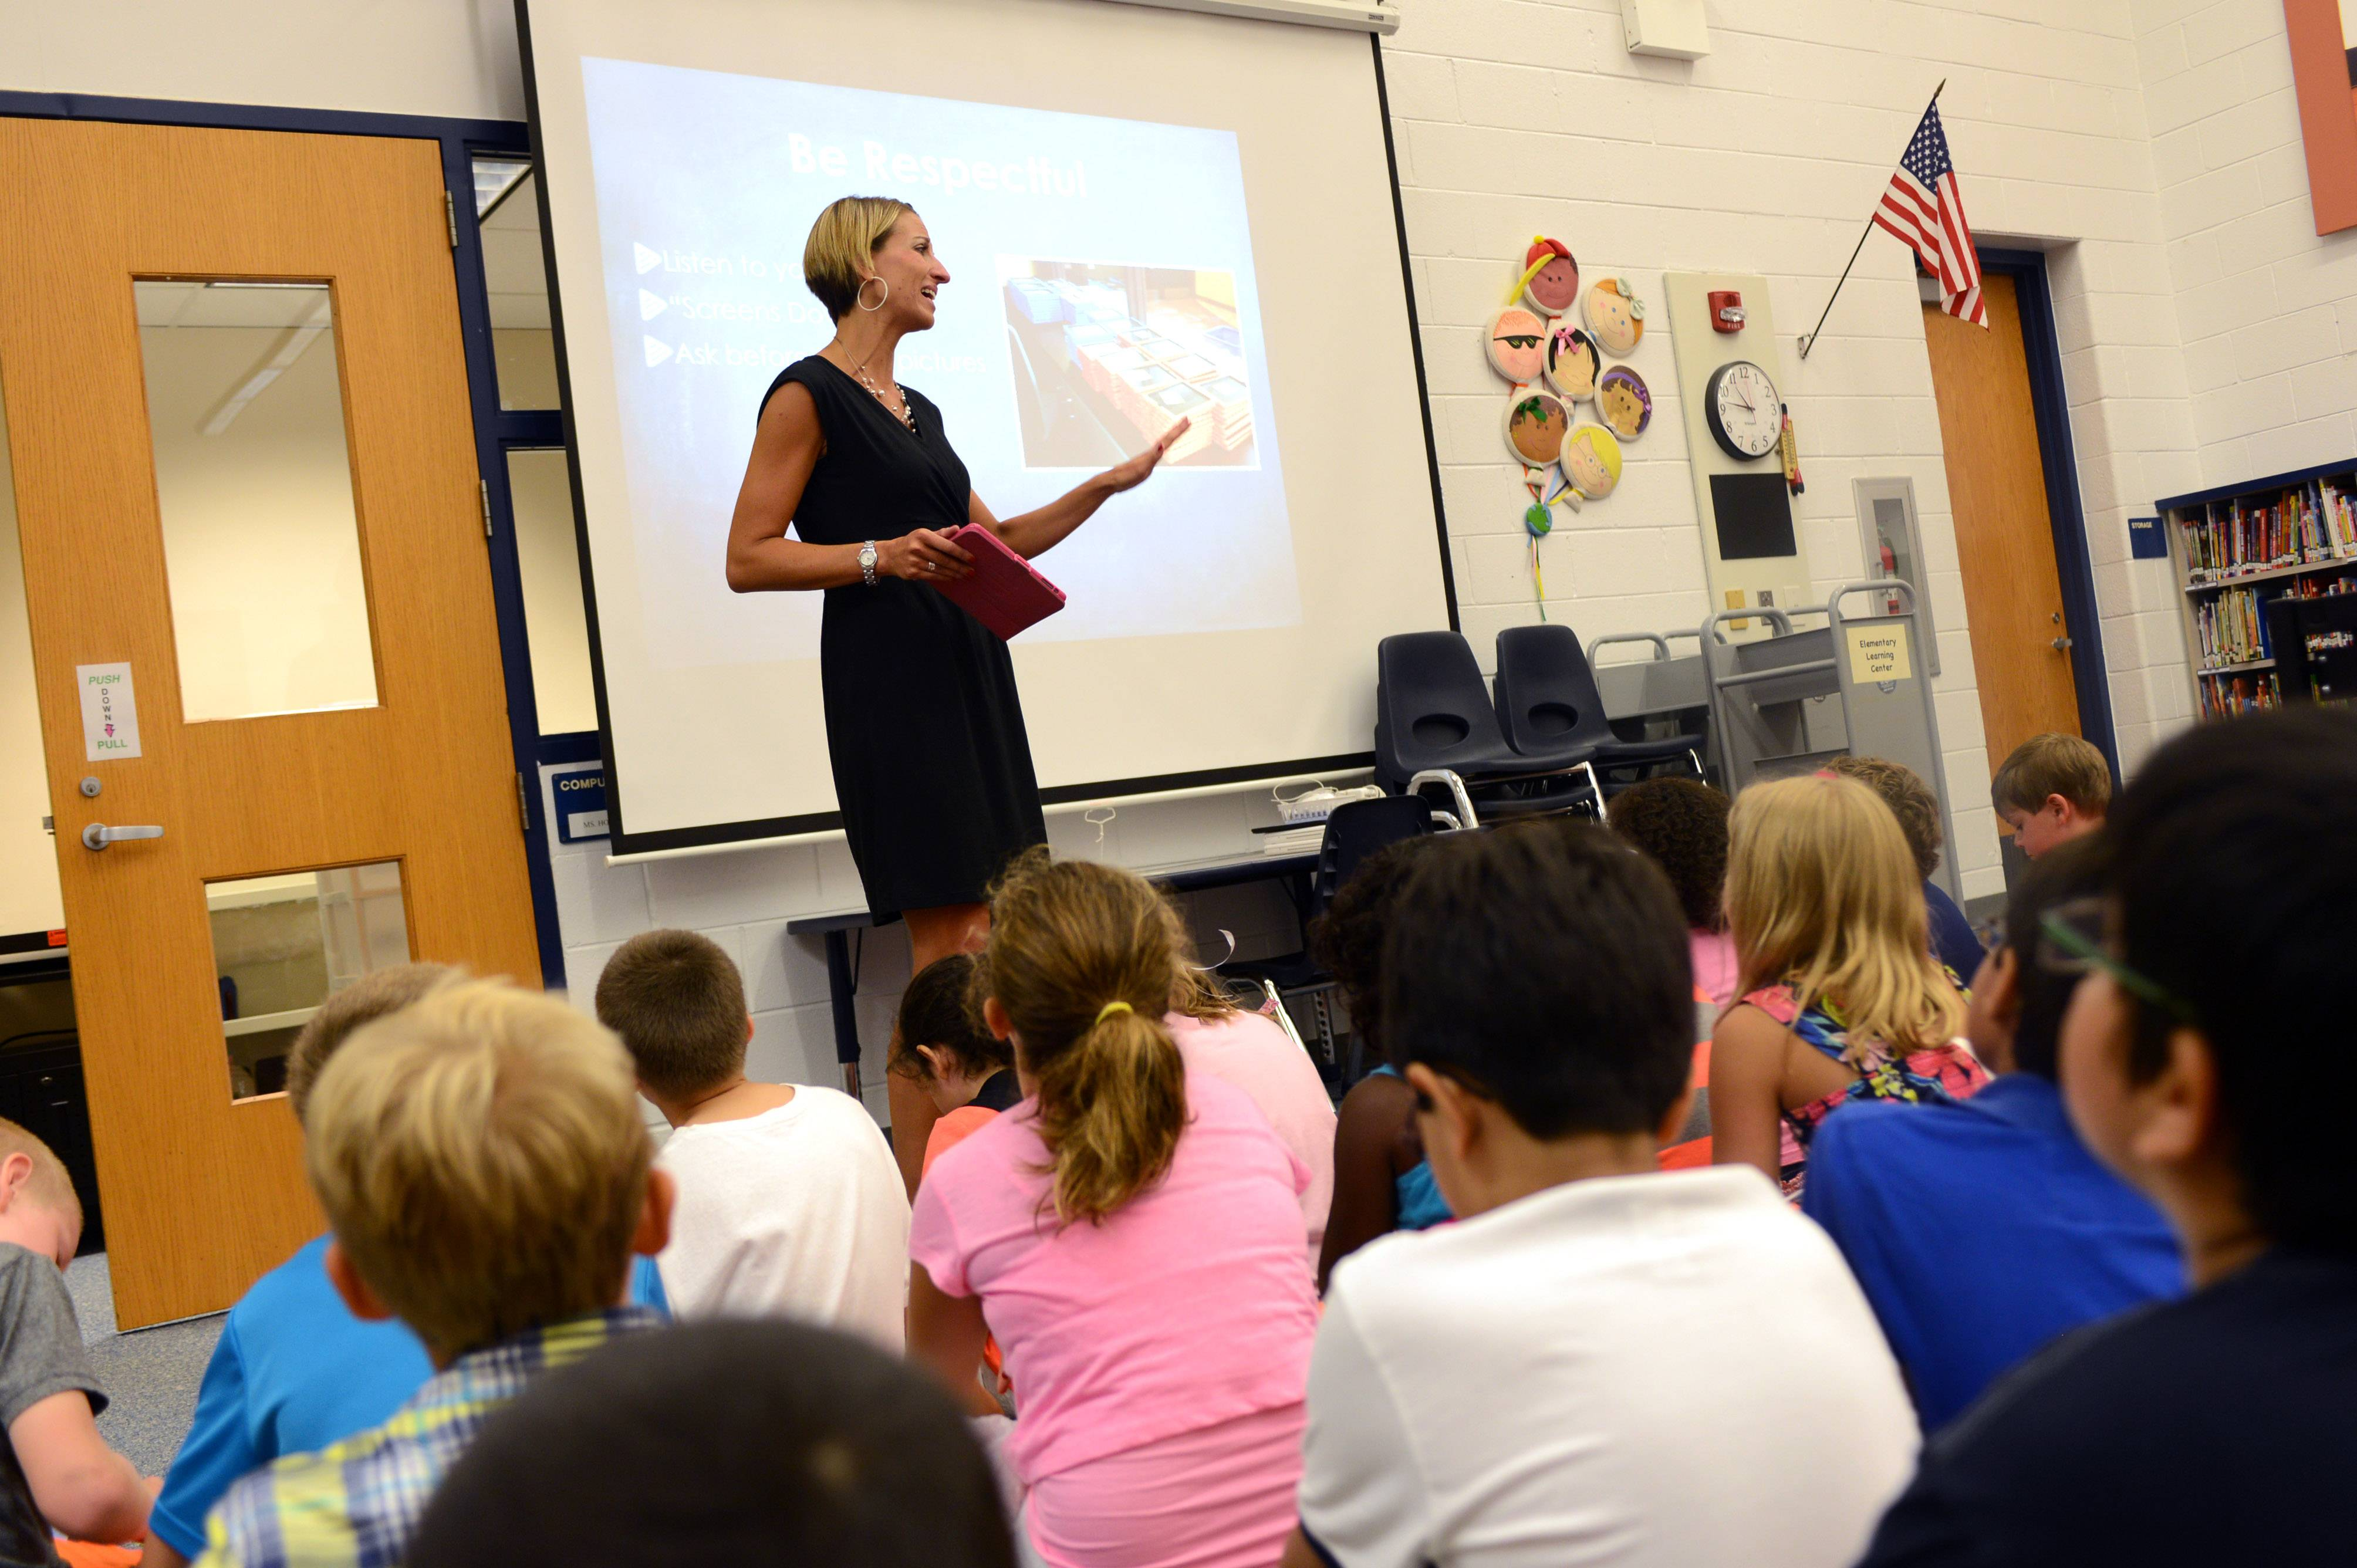 Oak Grove Elementary School technology specialist Allison Honaker gives an iPad overview to students Friday in Green Oaks.